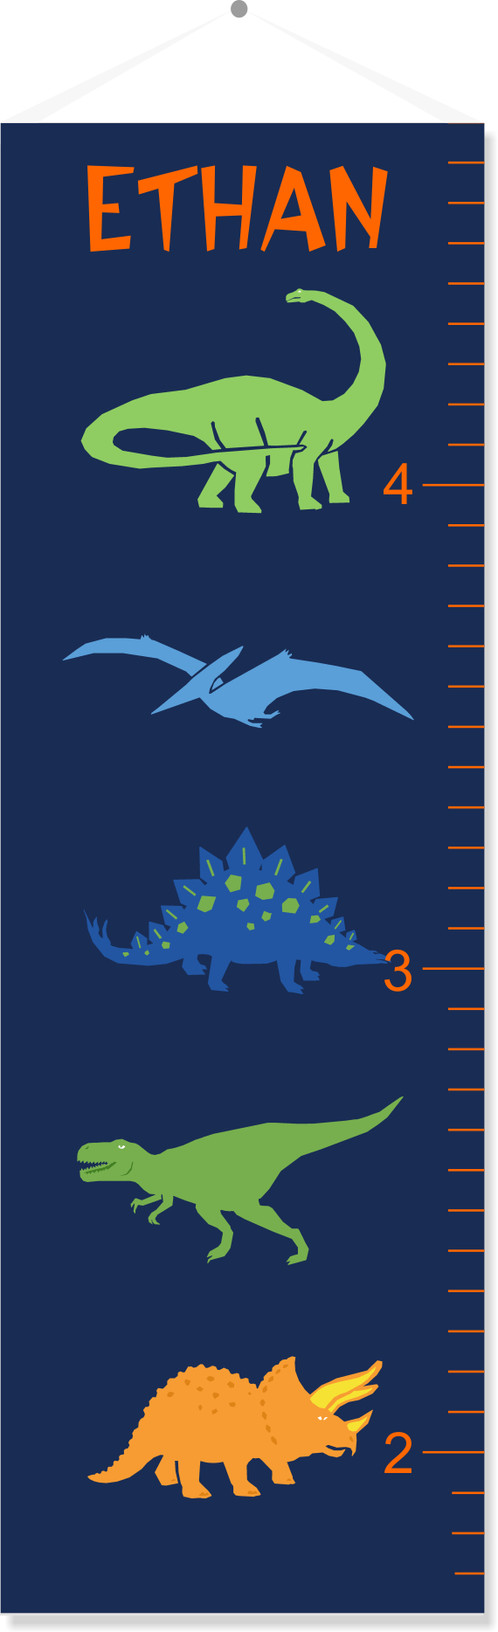 Dinosaur personalized growth chart personalized gifts aurora watch your little one grow and keep track of their progress in style with personalized canvas growth charts from tin tree gifts our canvas growth charts nvjuhfo Gallery